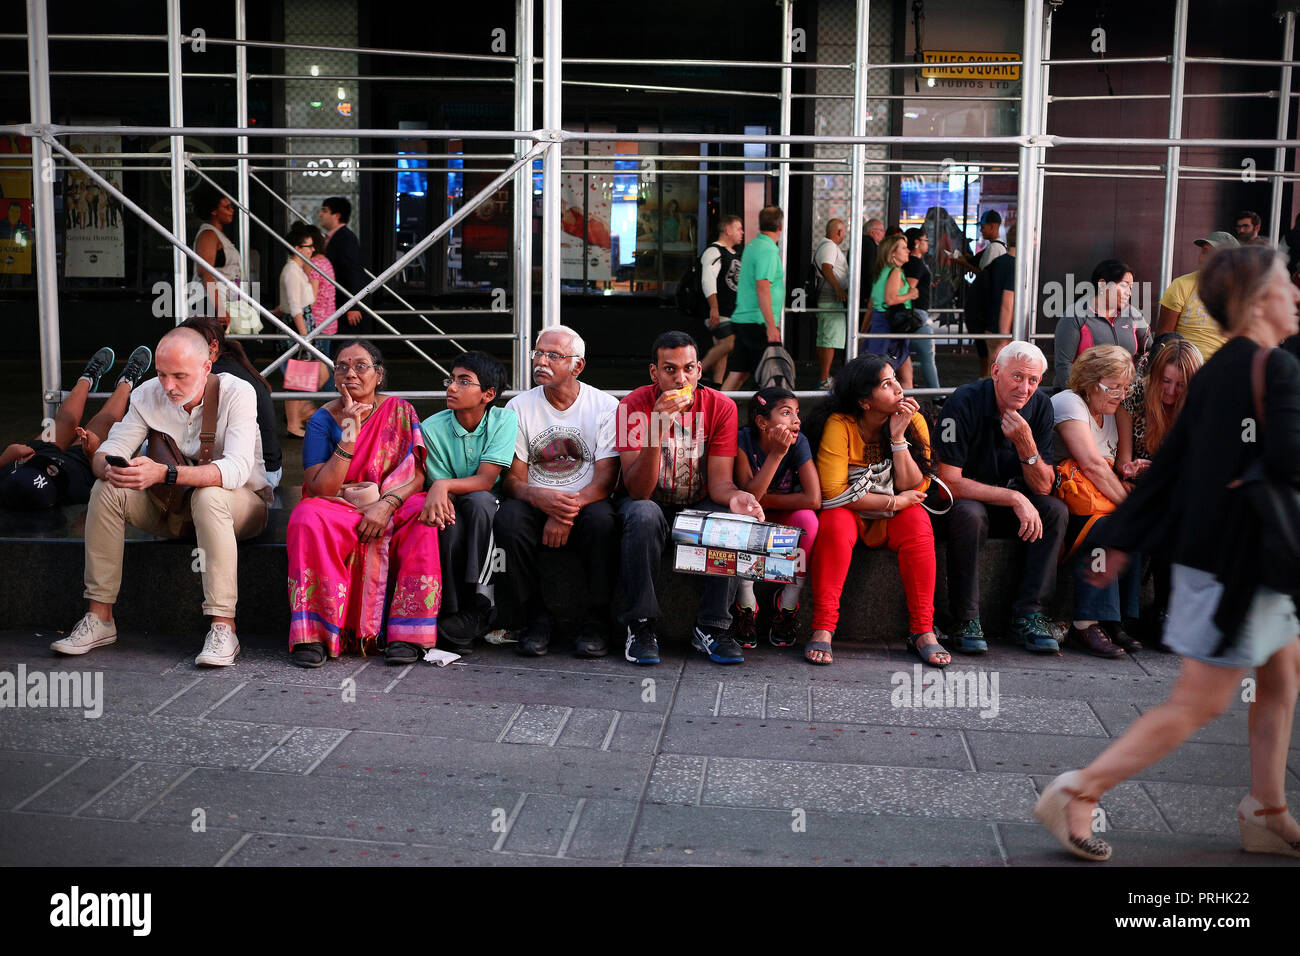 New York, Usa - June 24, 2018: Family eating in middle of Times Square, New York City - Stock Image